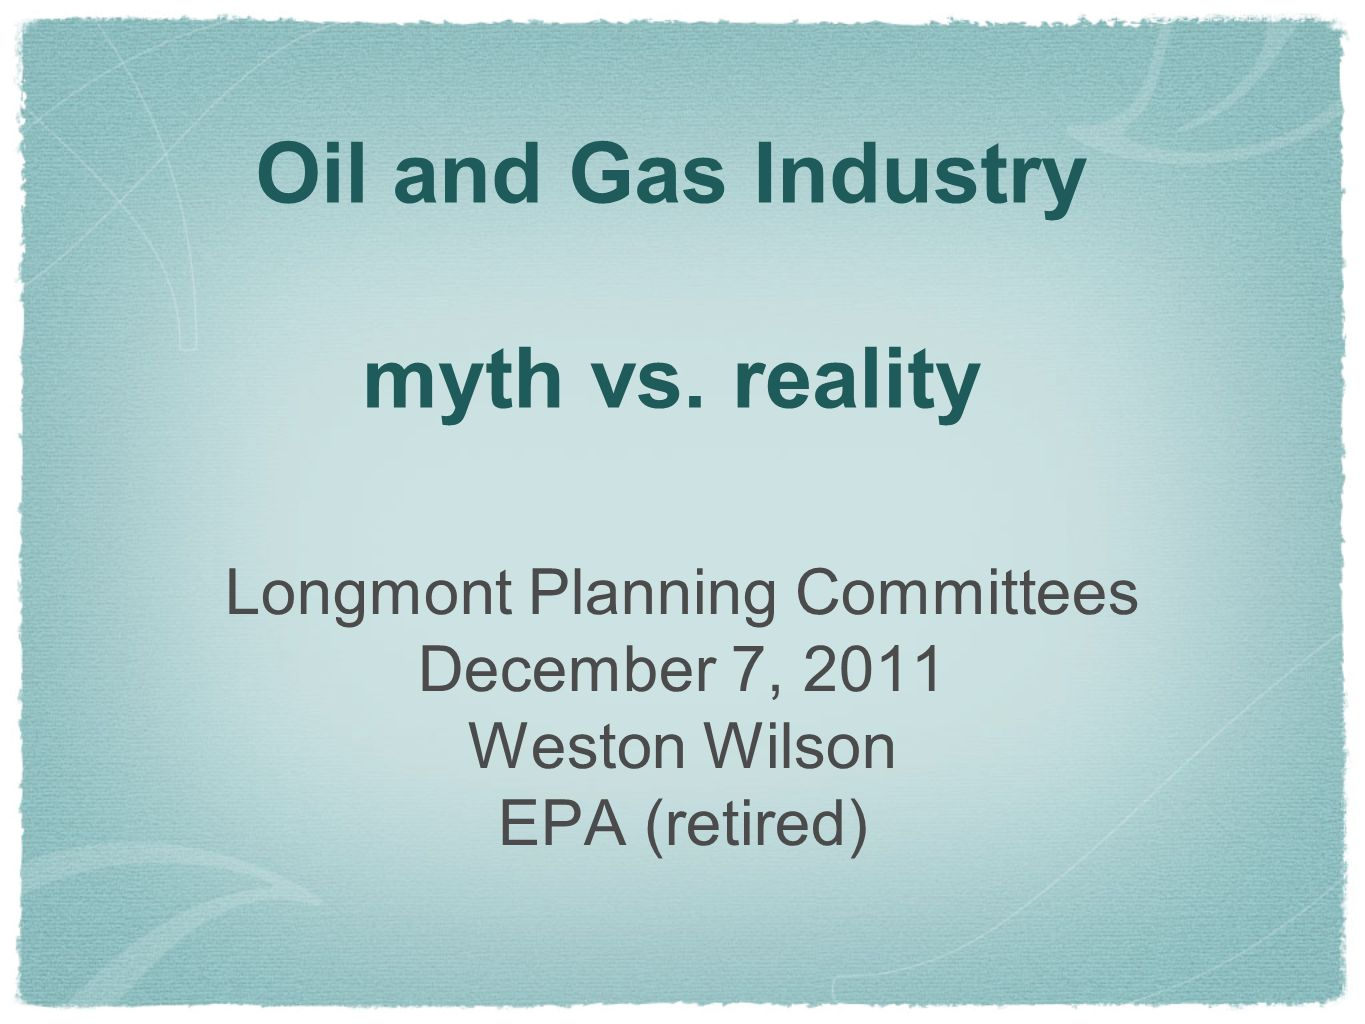 Oil and Gas Industry myth vs. reality Longmont Planning Committees December 7, 2011 Weston Wilson EPA (retired)